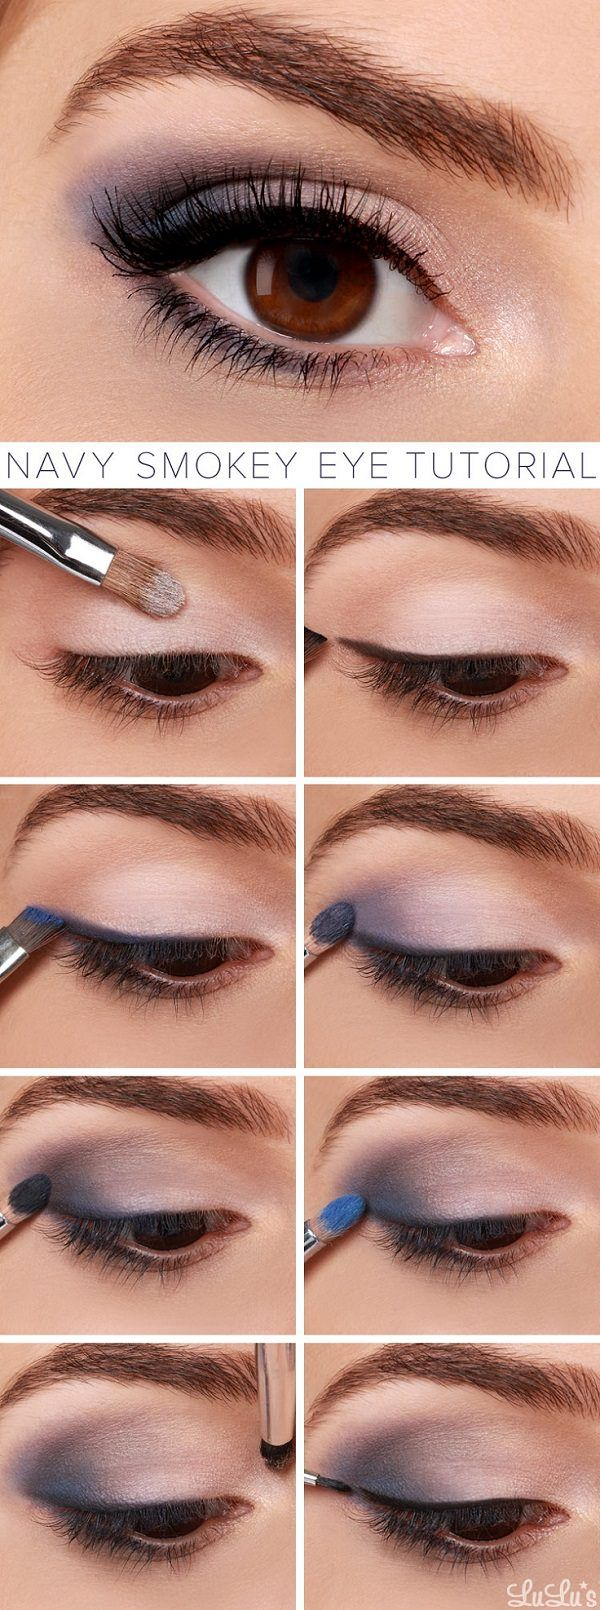 17 Best Ideas About Quick Makeup On Pinterest